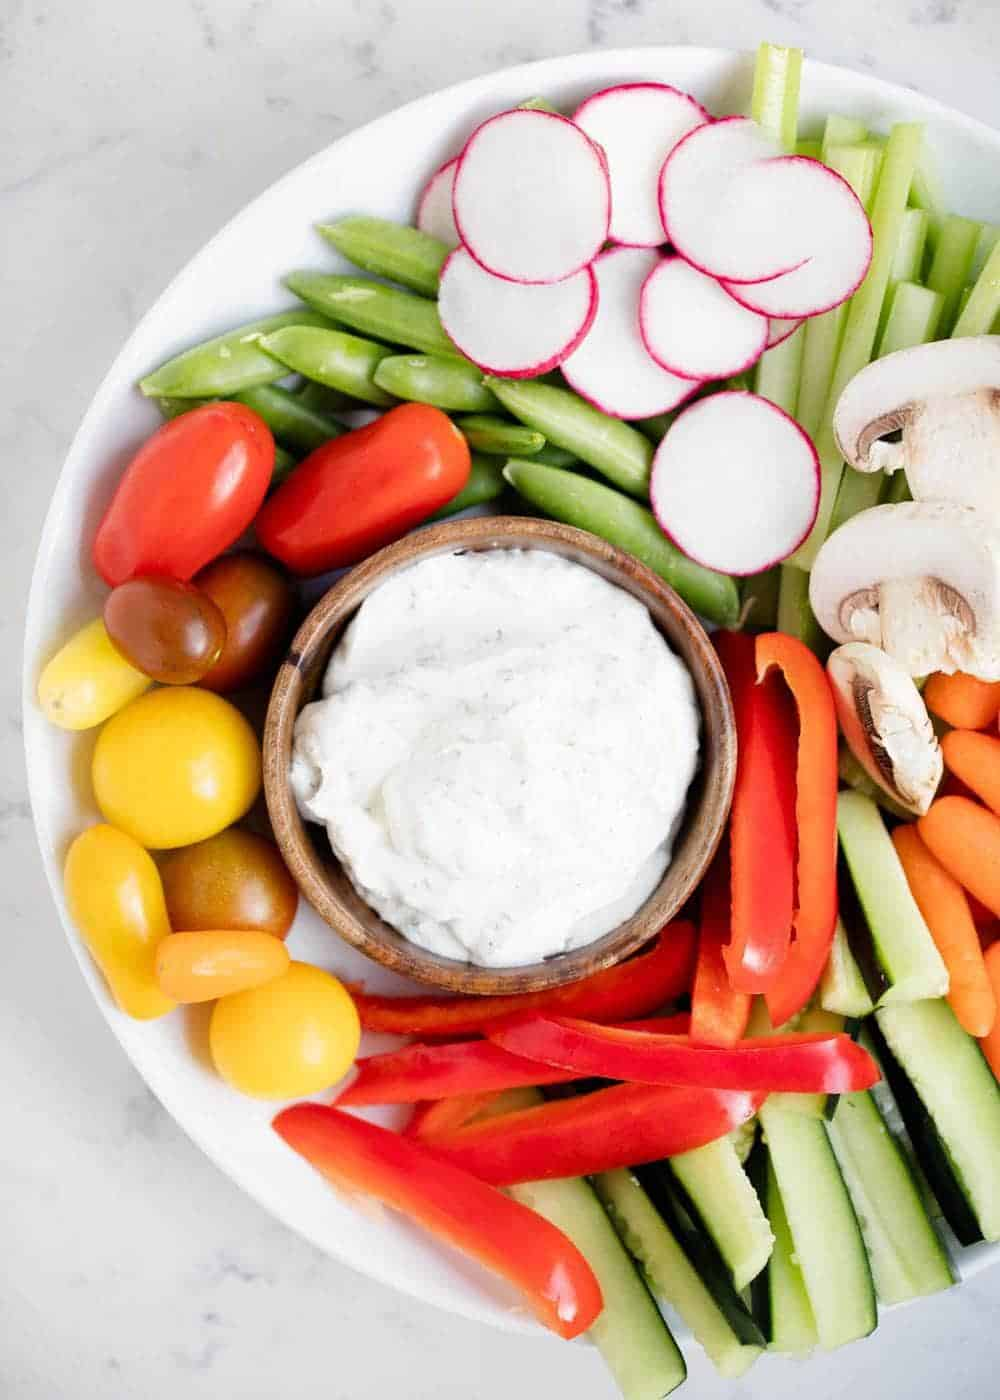 dill vegetable dip and fresh veggies on a white plate